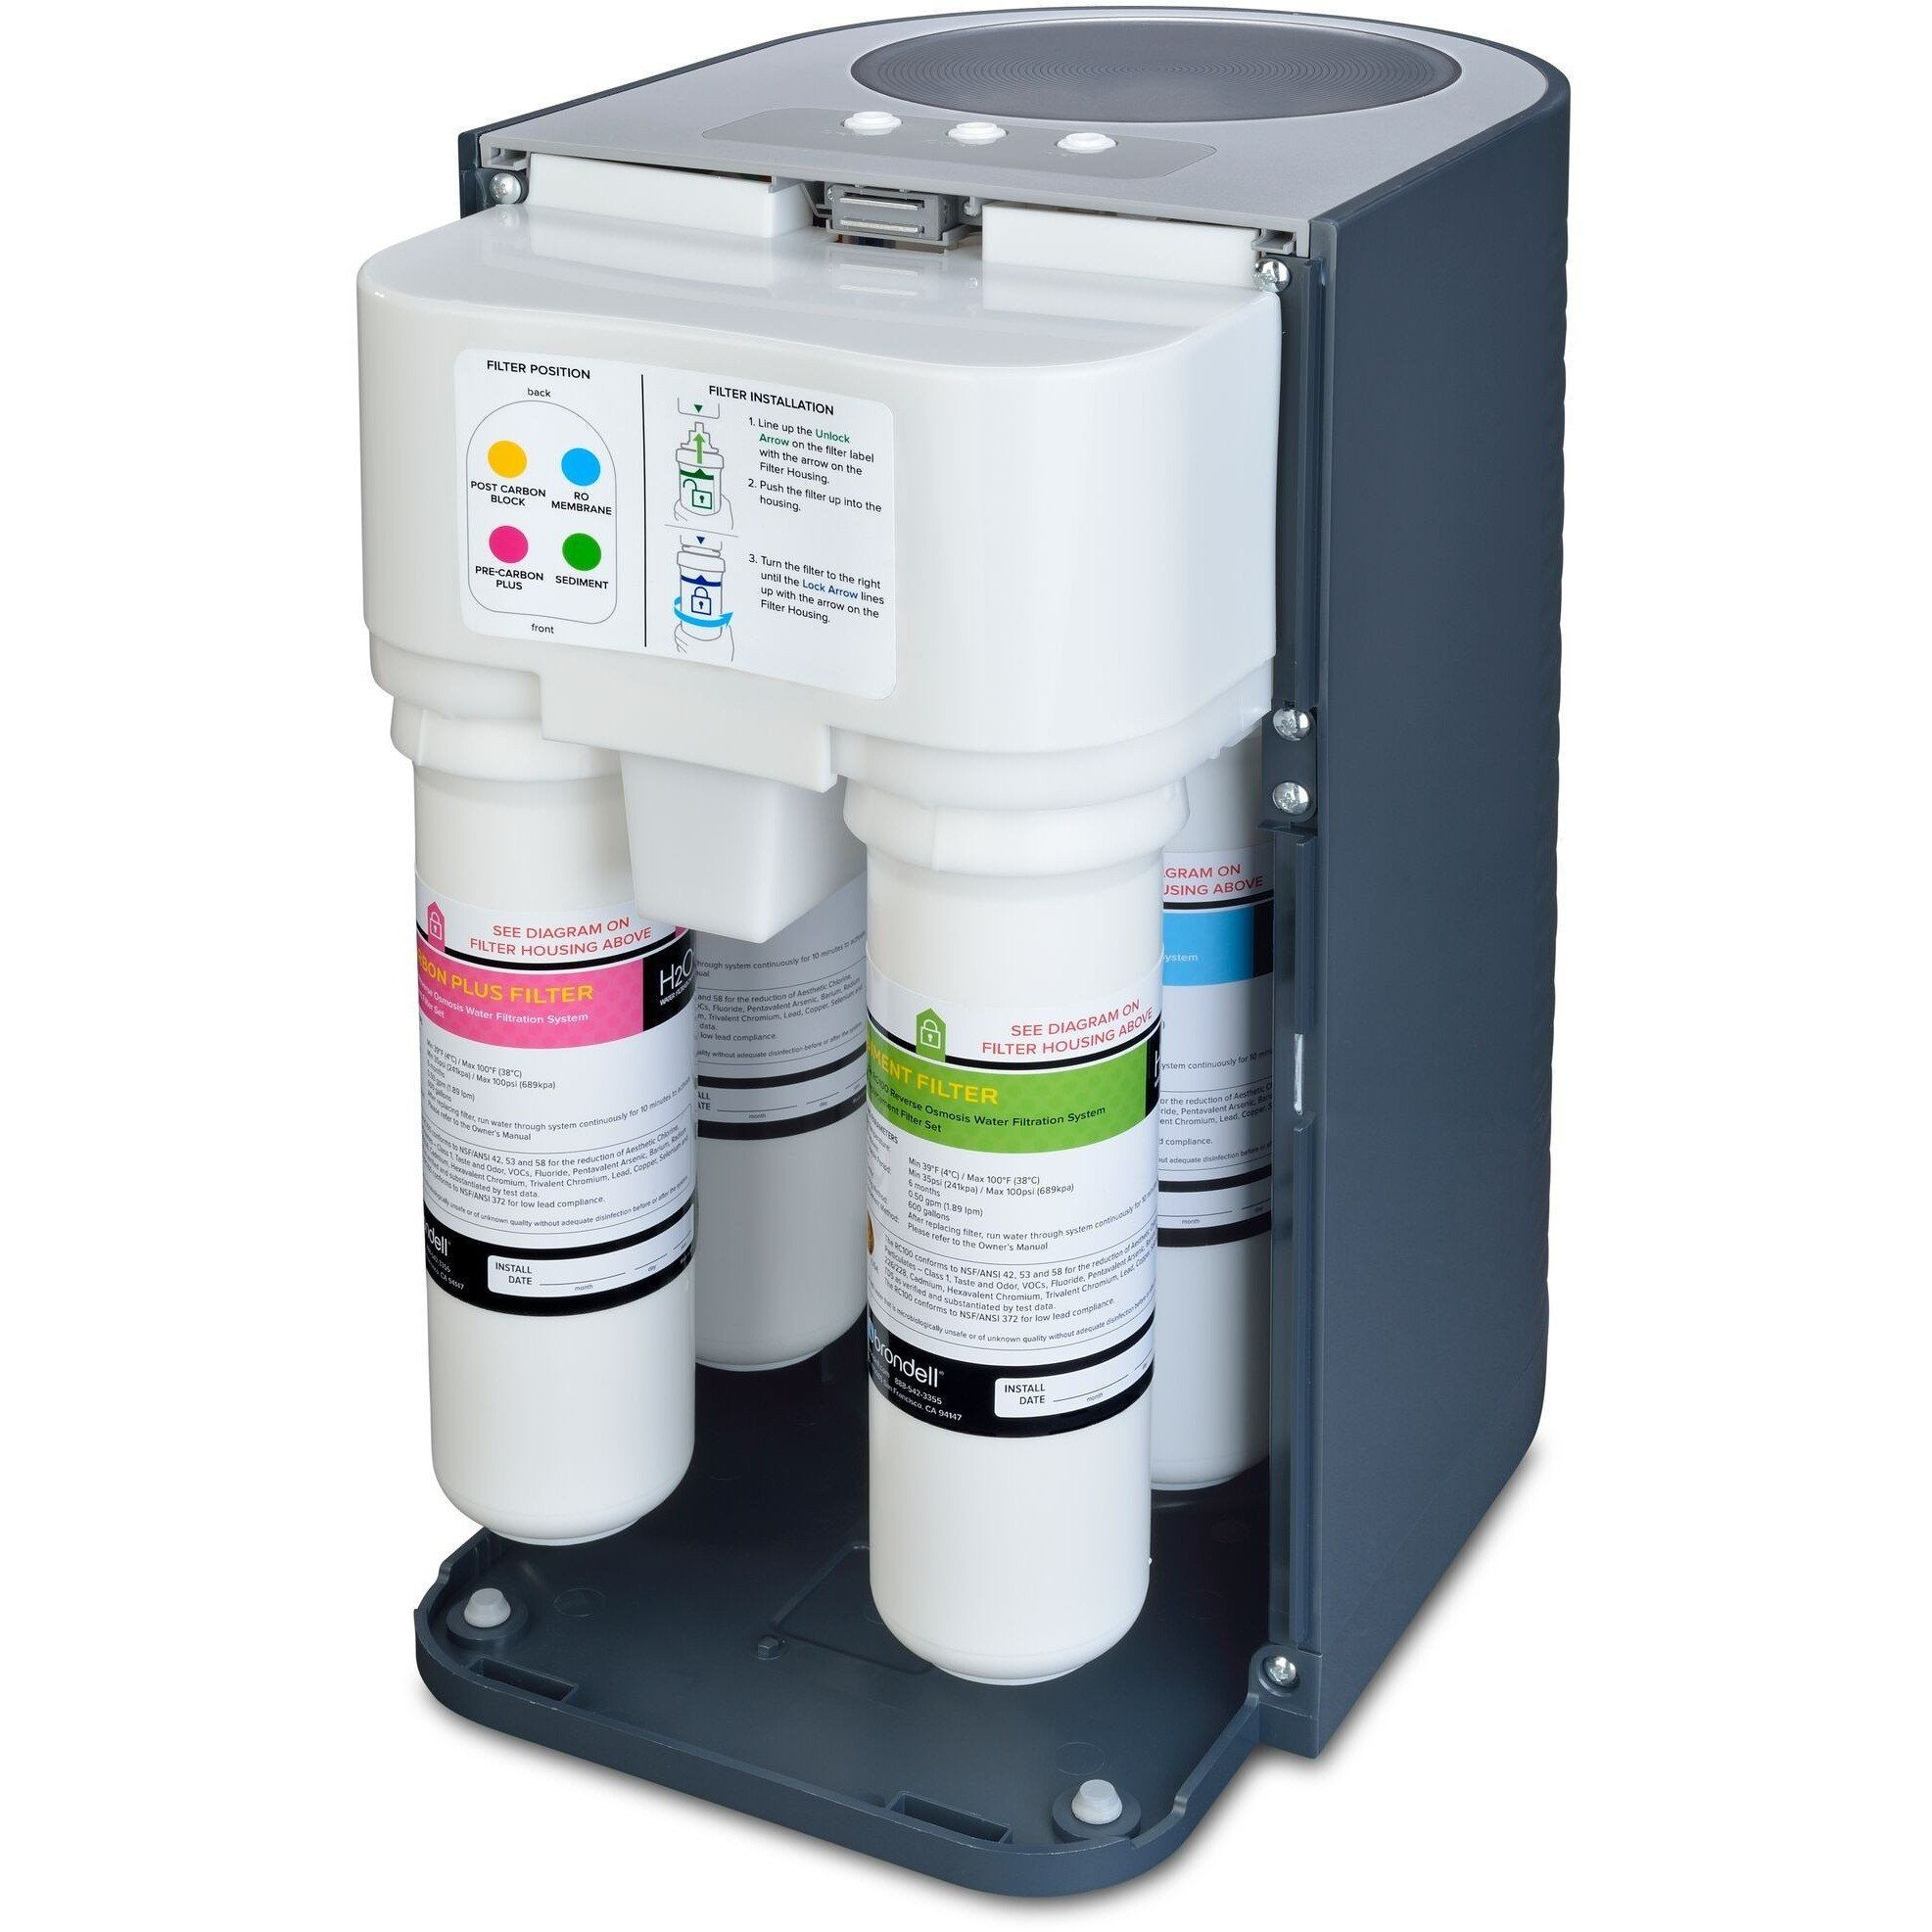 cartridge products safe listing sosafe filtration ctufgacc uf uae with so purifiers in for water counter countertop system drinking top